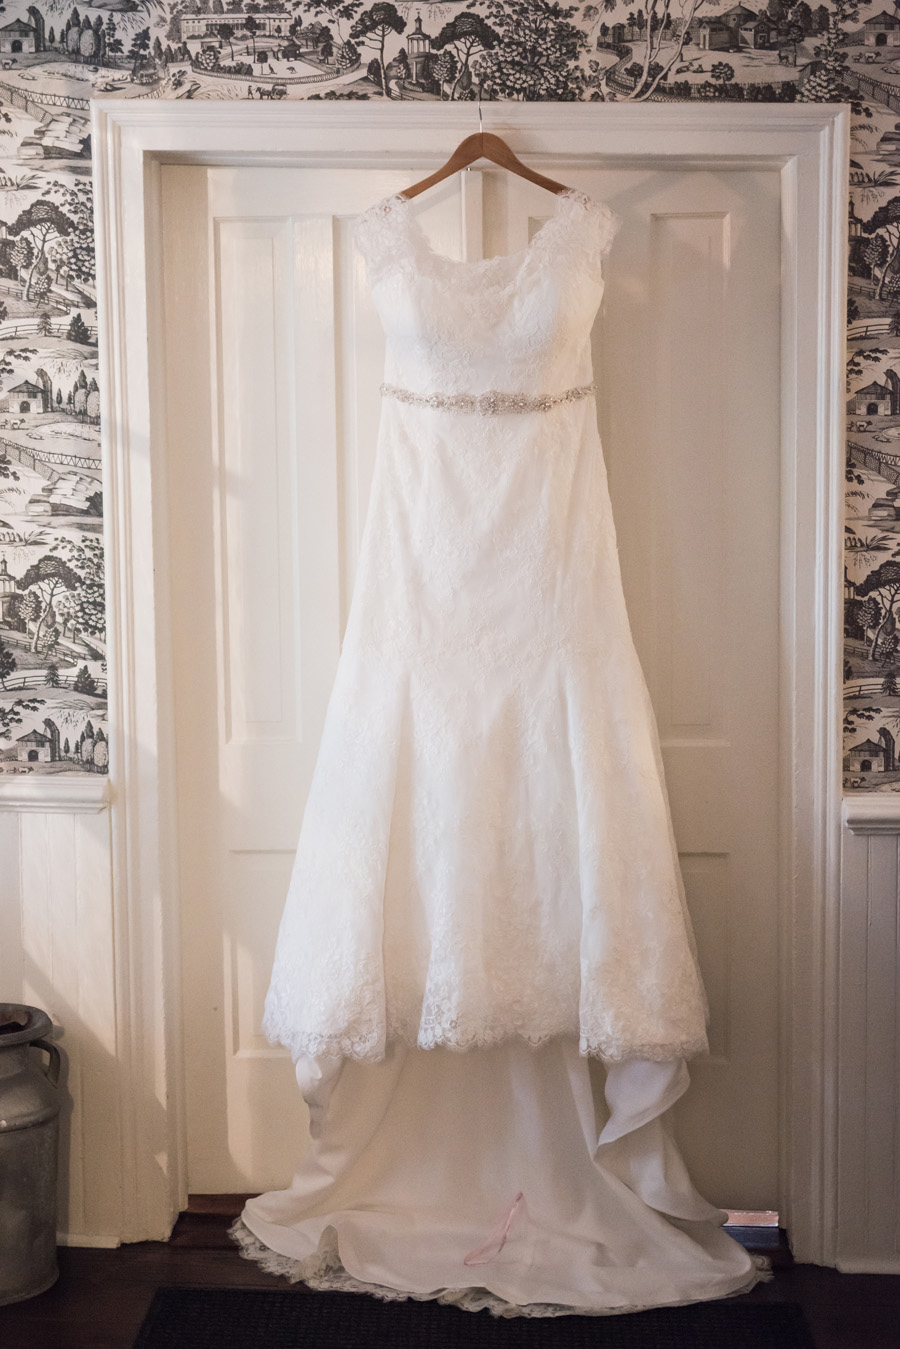 Detail photo of dress hanging up.